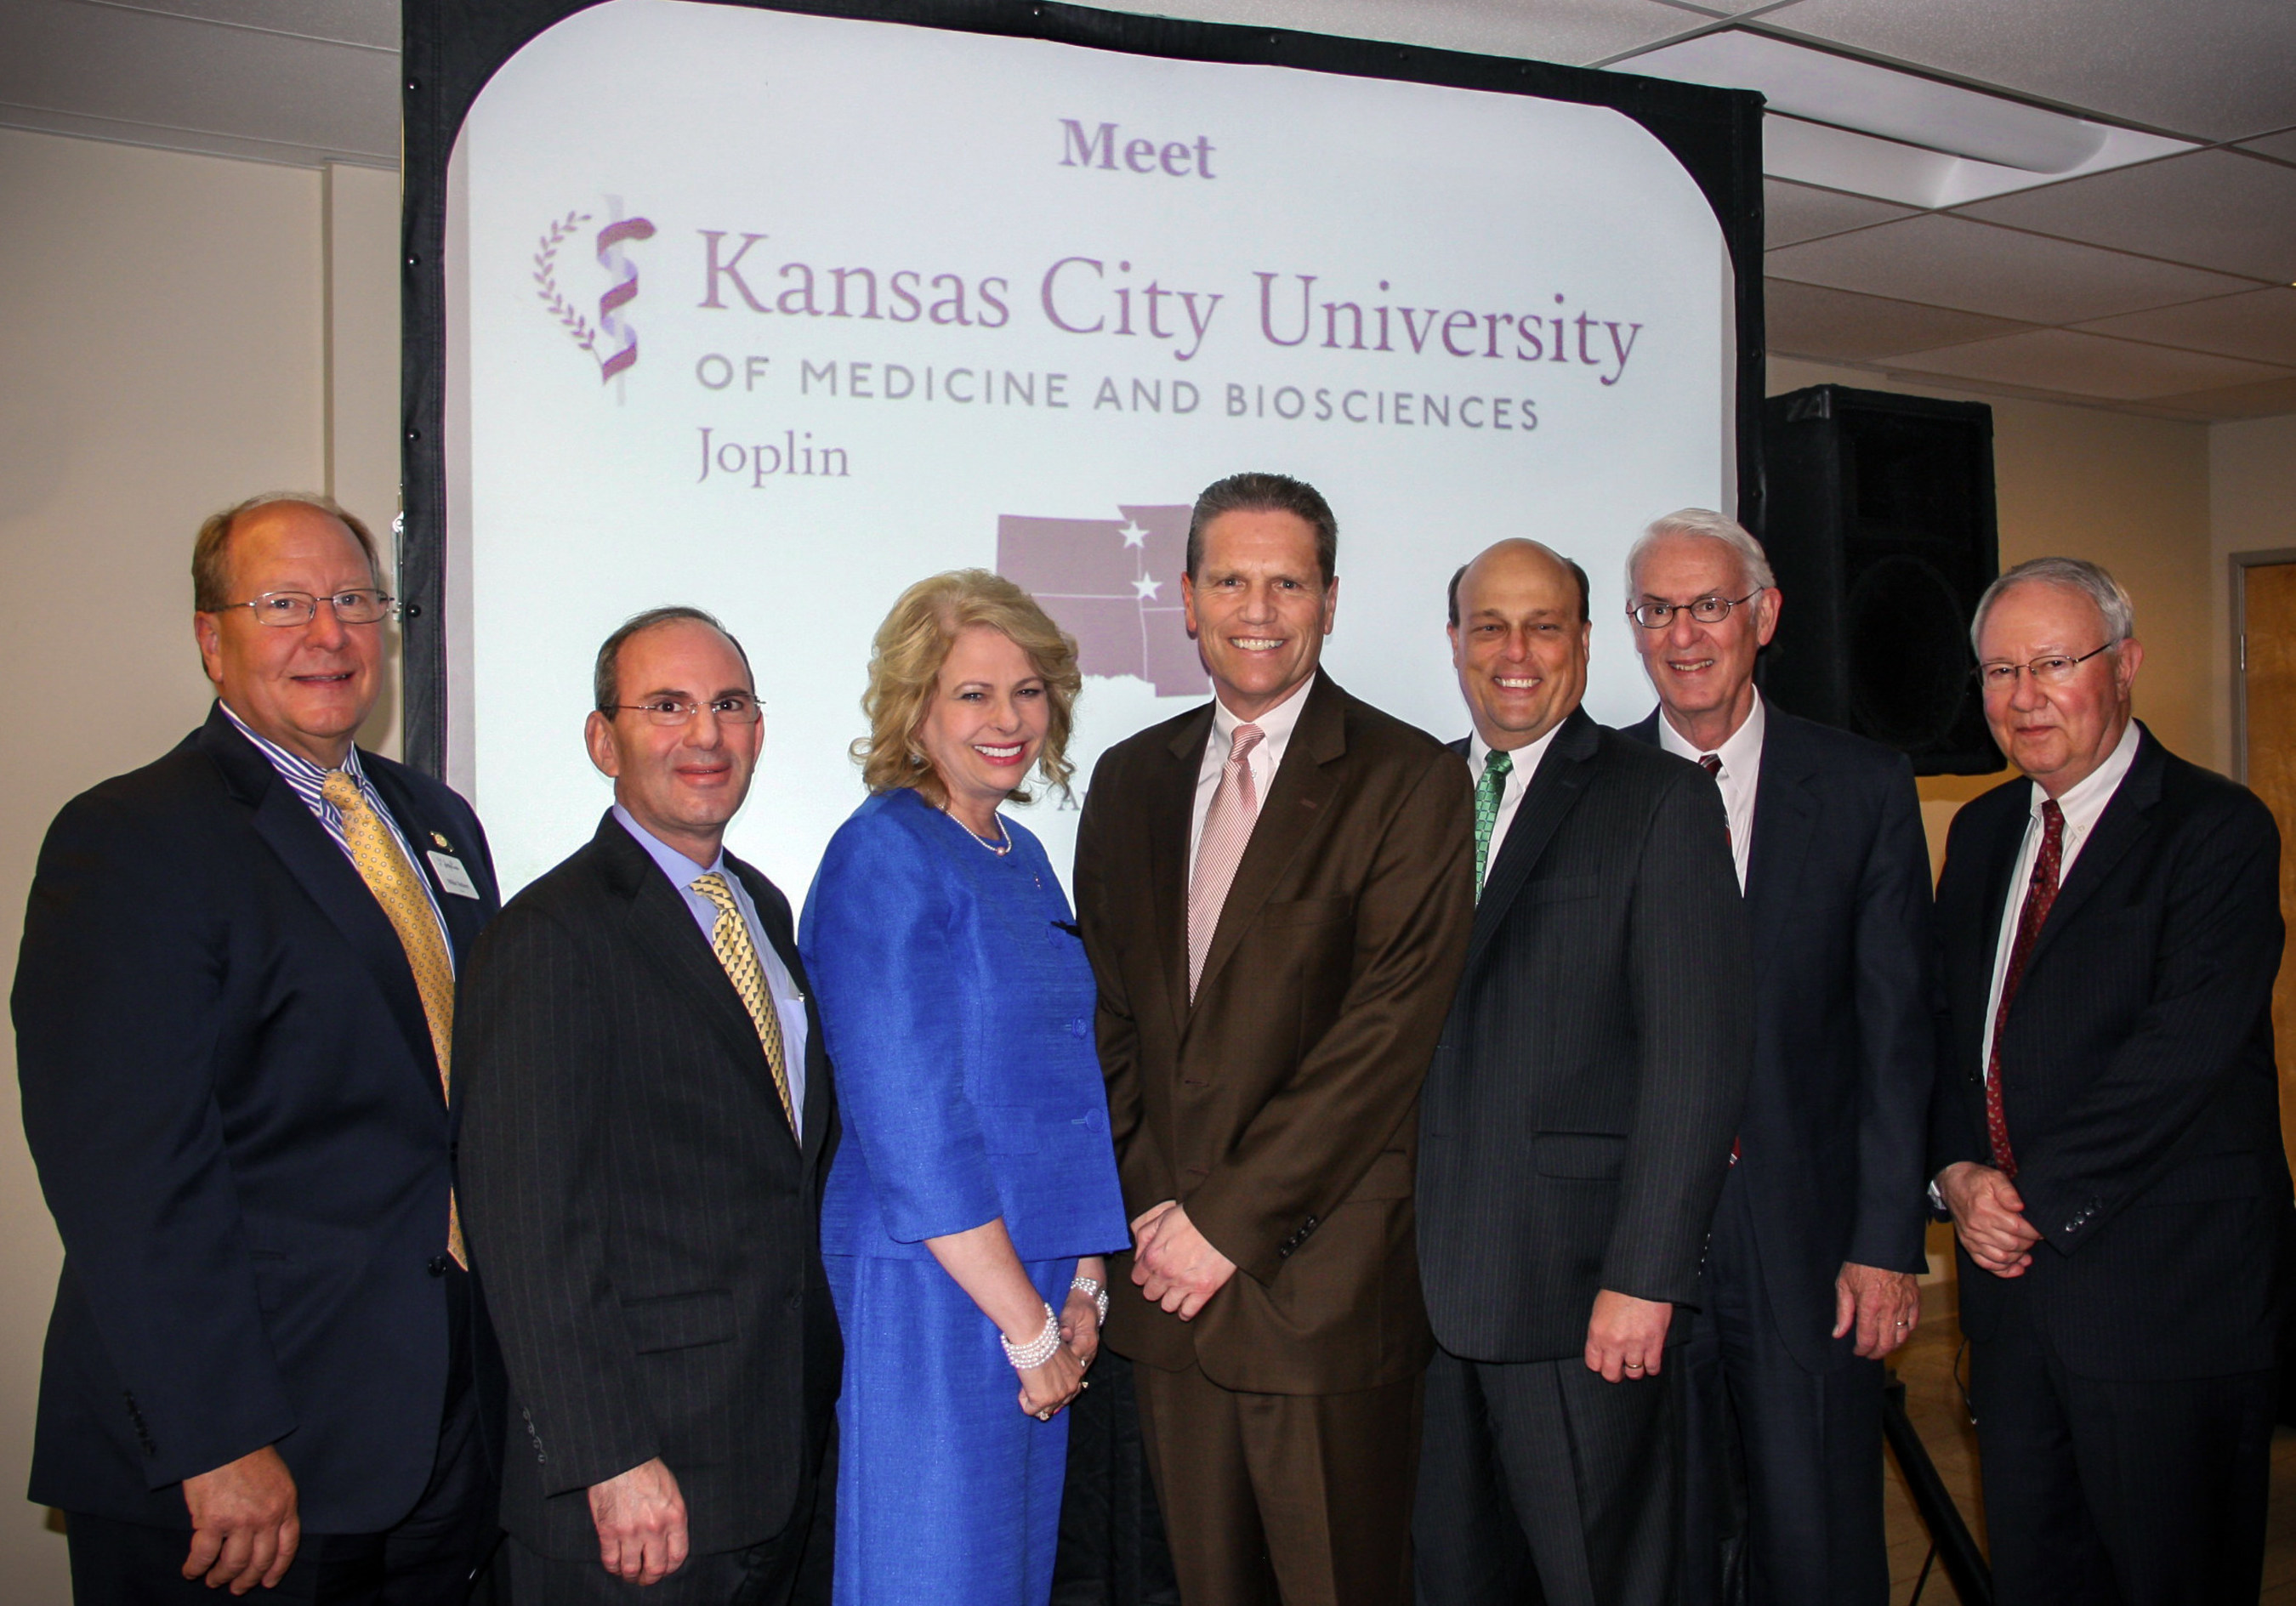 The Kansas City University of Medicine and Biosciences (KCU) partnered with the Joplin community to open the first new medical school in Missouri nearly 50 years: (Left to Right) Michael Siebert, mayor of Joplin, Marc B. Hahn, DO, president and chief executive officer of KCU, Paula Baker, president and chief executive officer of Freeman Health System, Gary Pulsipher, president of Mercy Hospital Joplin, Rob O'Brian, president of the Joplin Area Chamber of Commerce, Larry McIntire, DO, president of the Joplin Regional Medical School Alliance, and Rudy Farber, chairman of Community Bank & Trust.